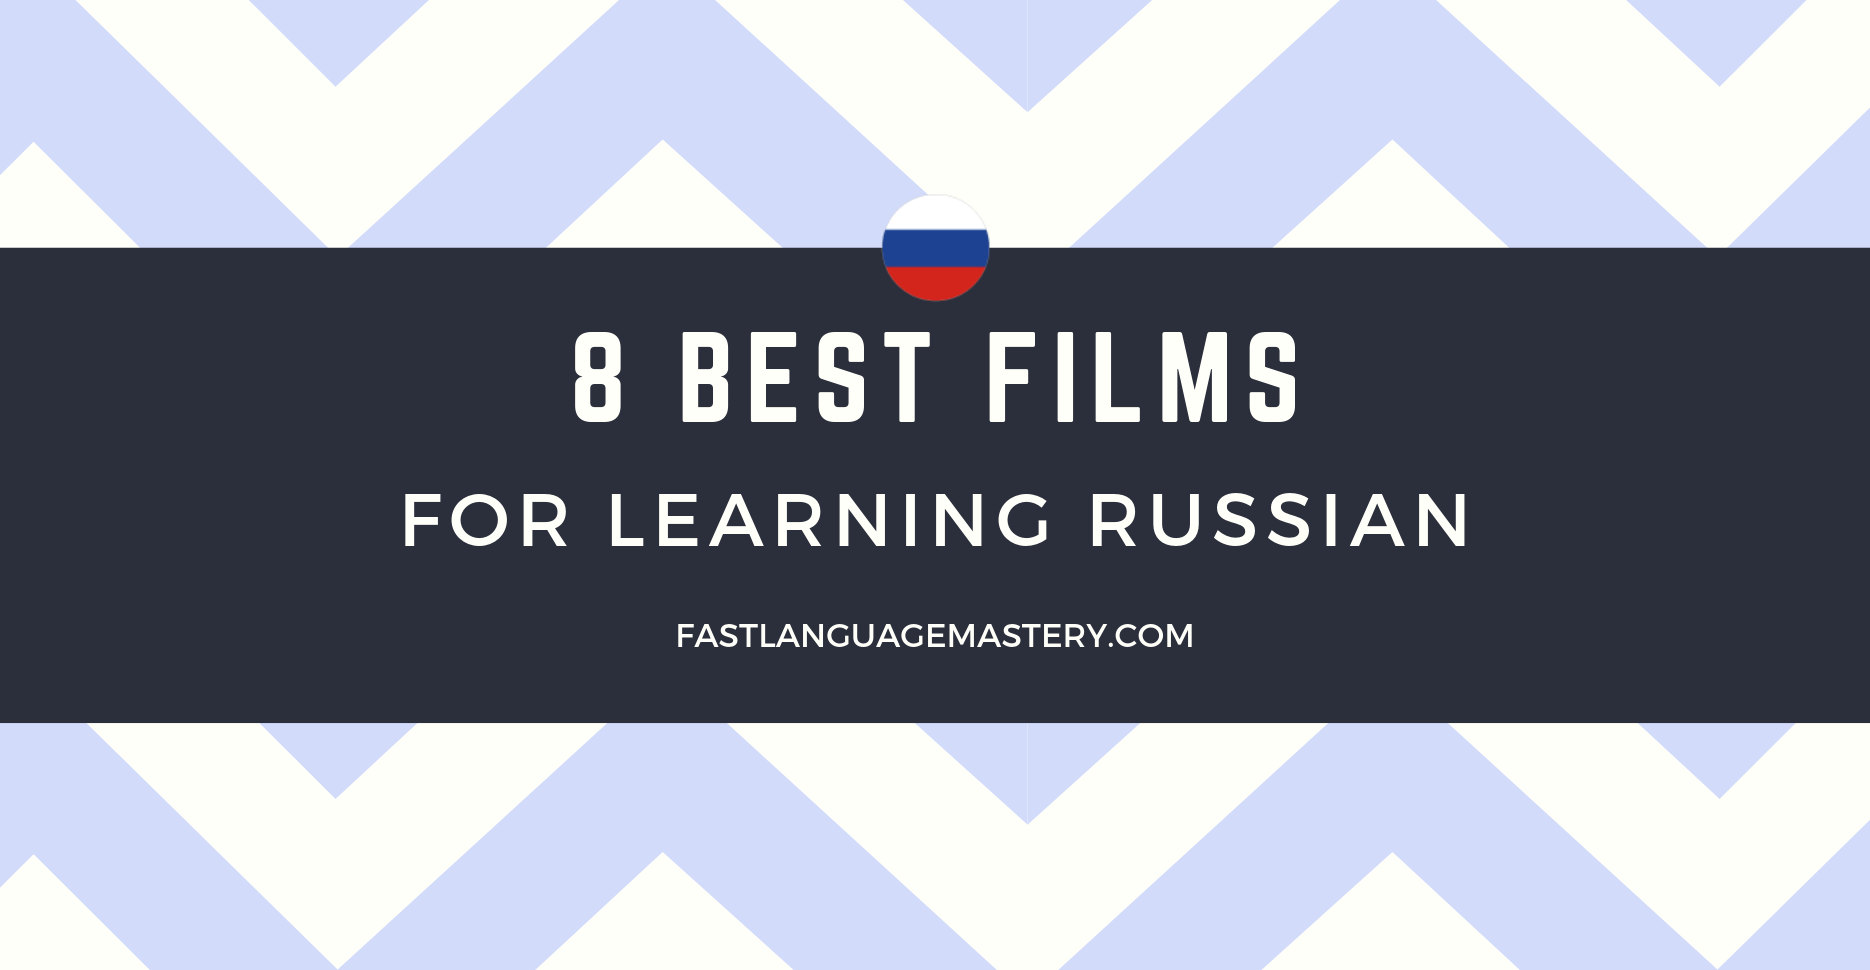 8 best films for learning Russian